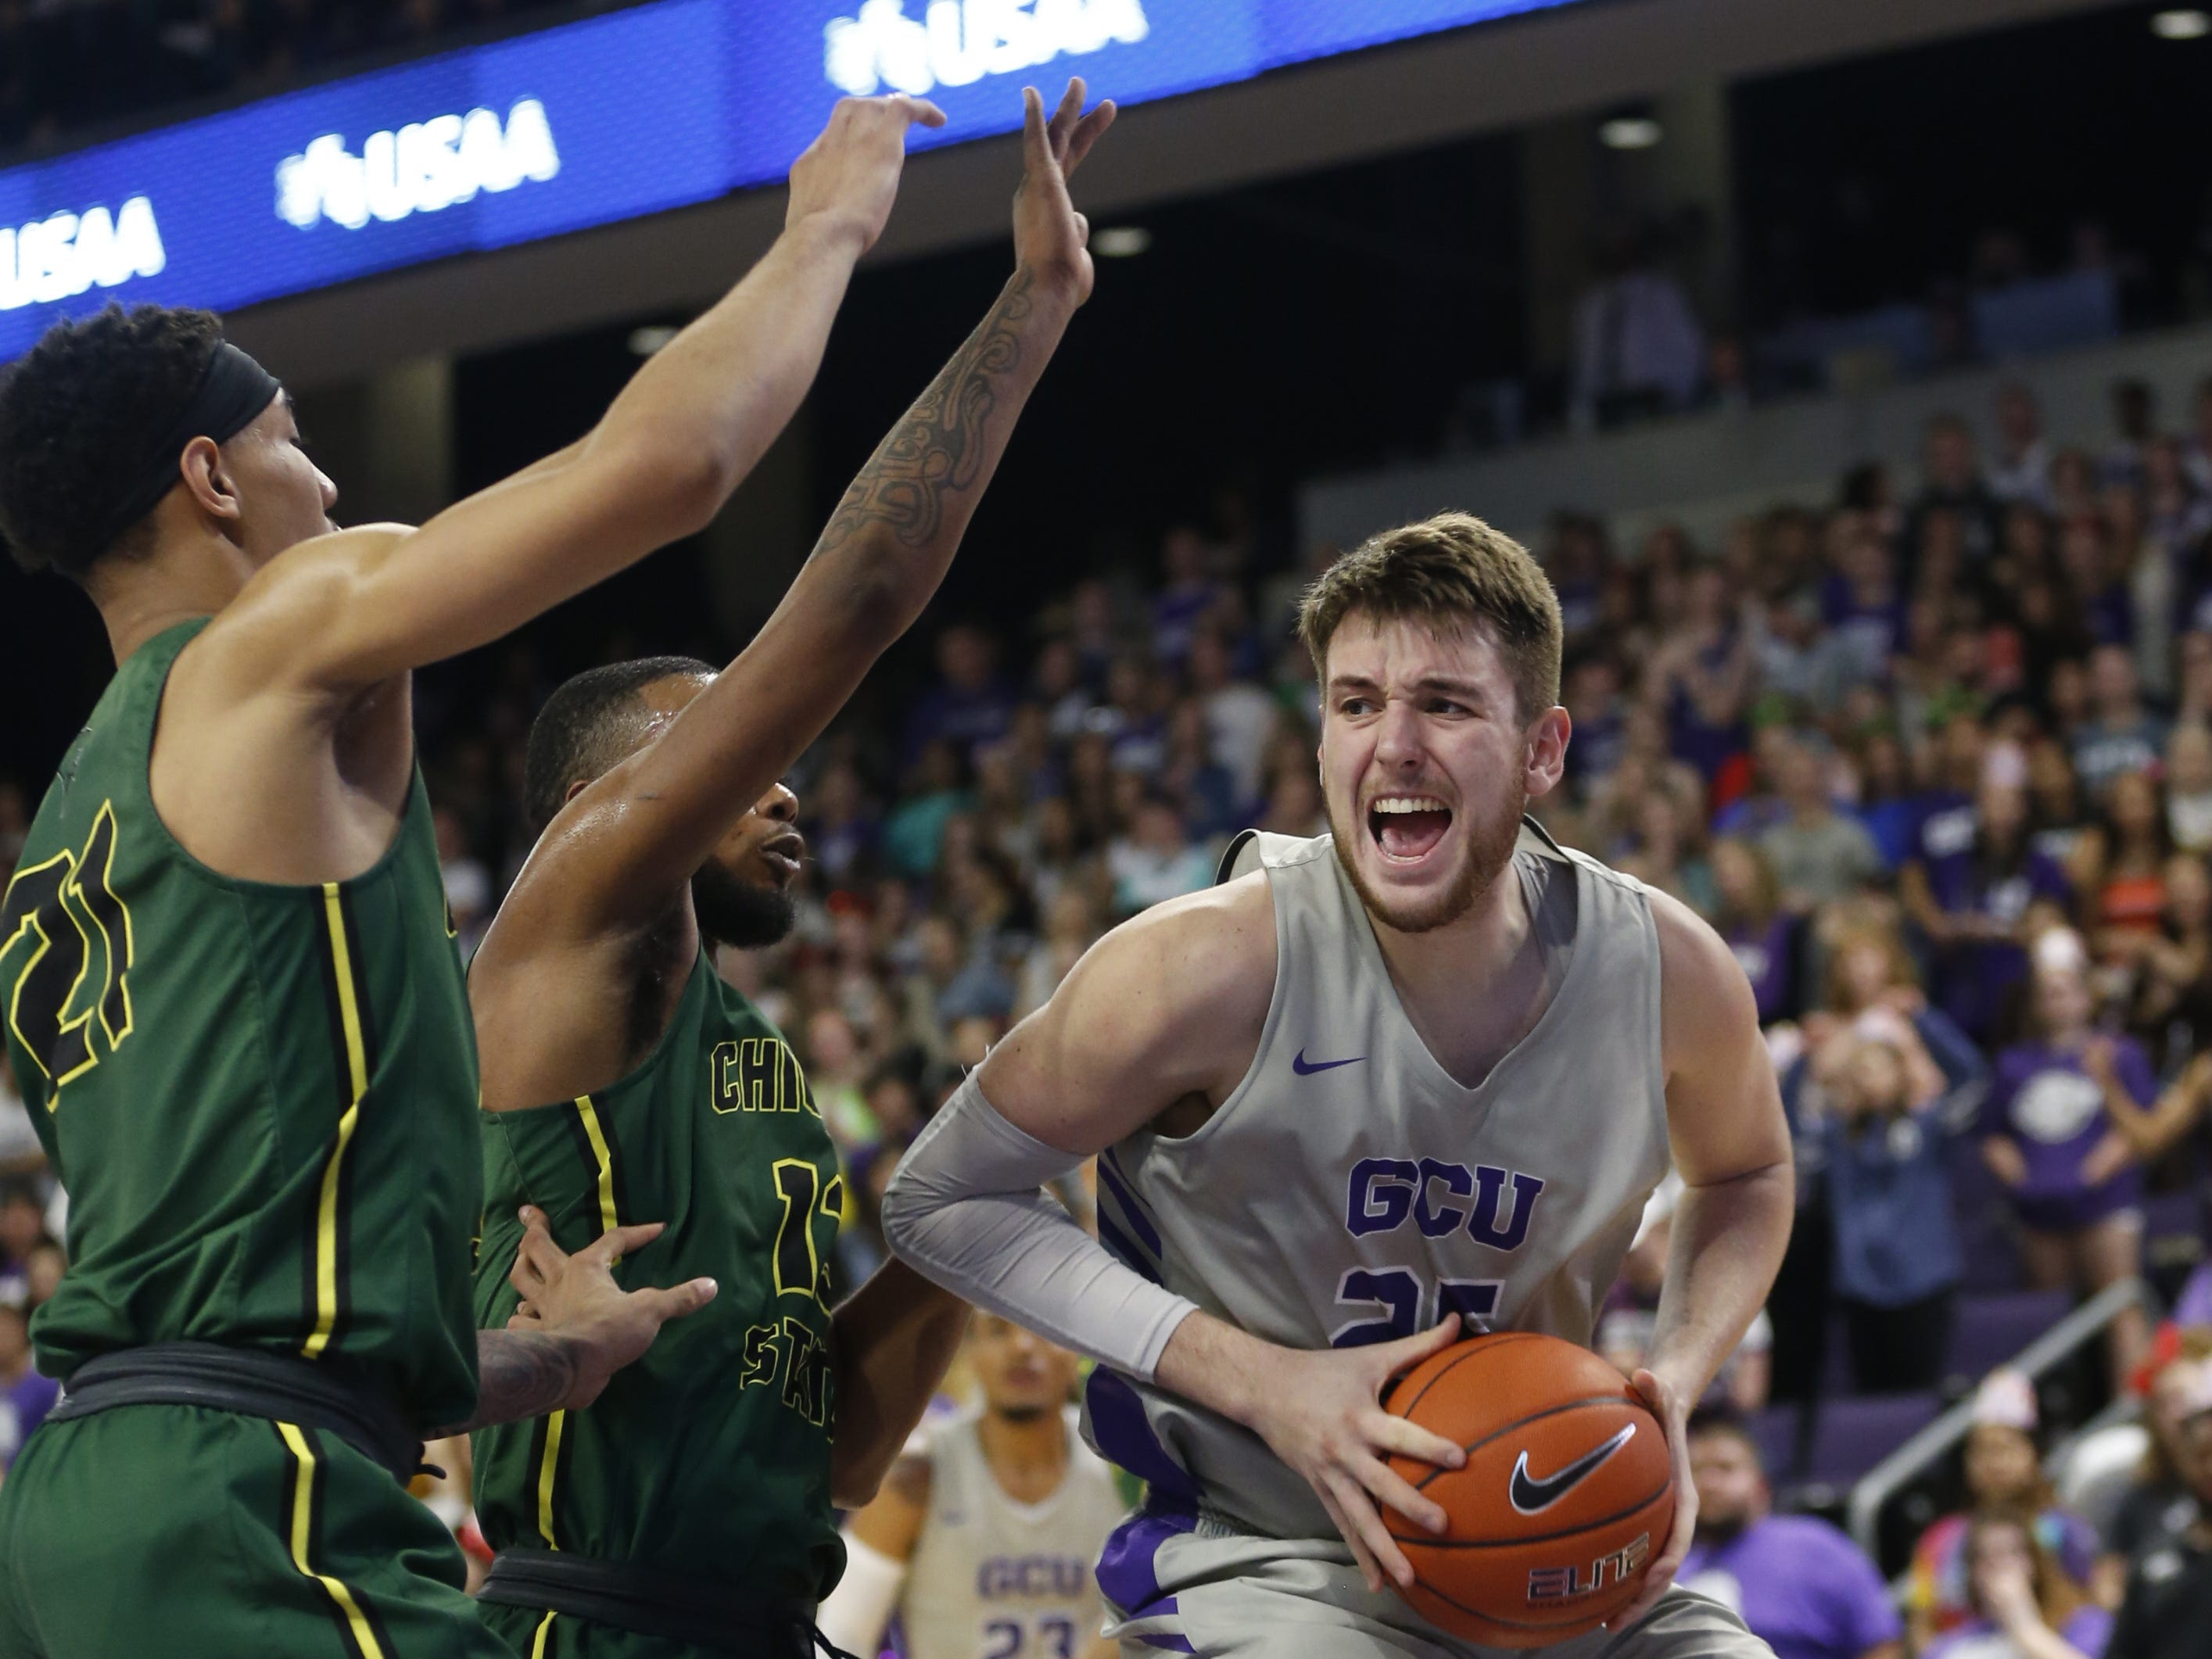 GCU's Alessandro Lever (25) drives into the post against Chicago State University's Christian Jacob (13) during the first half at Grand Canyon University Arena in Phoenix, Ariz. on January 17, 2019.